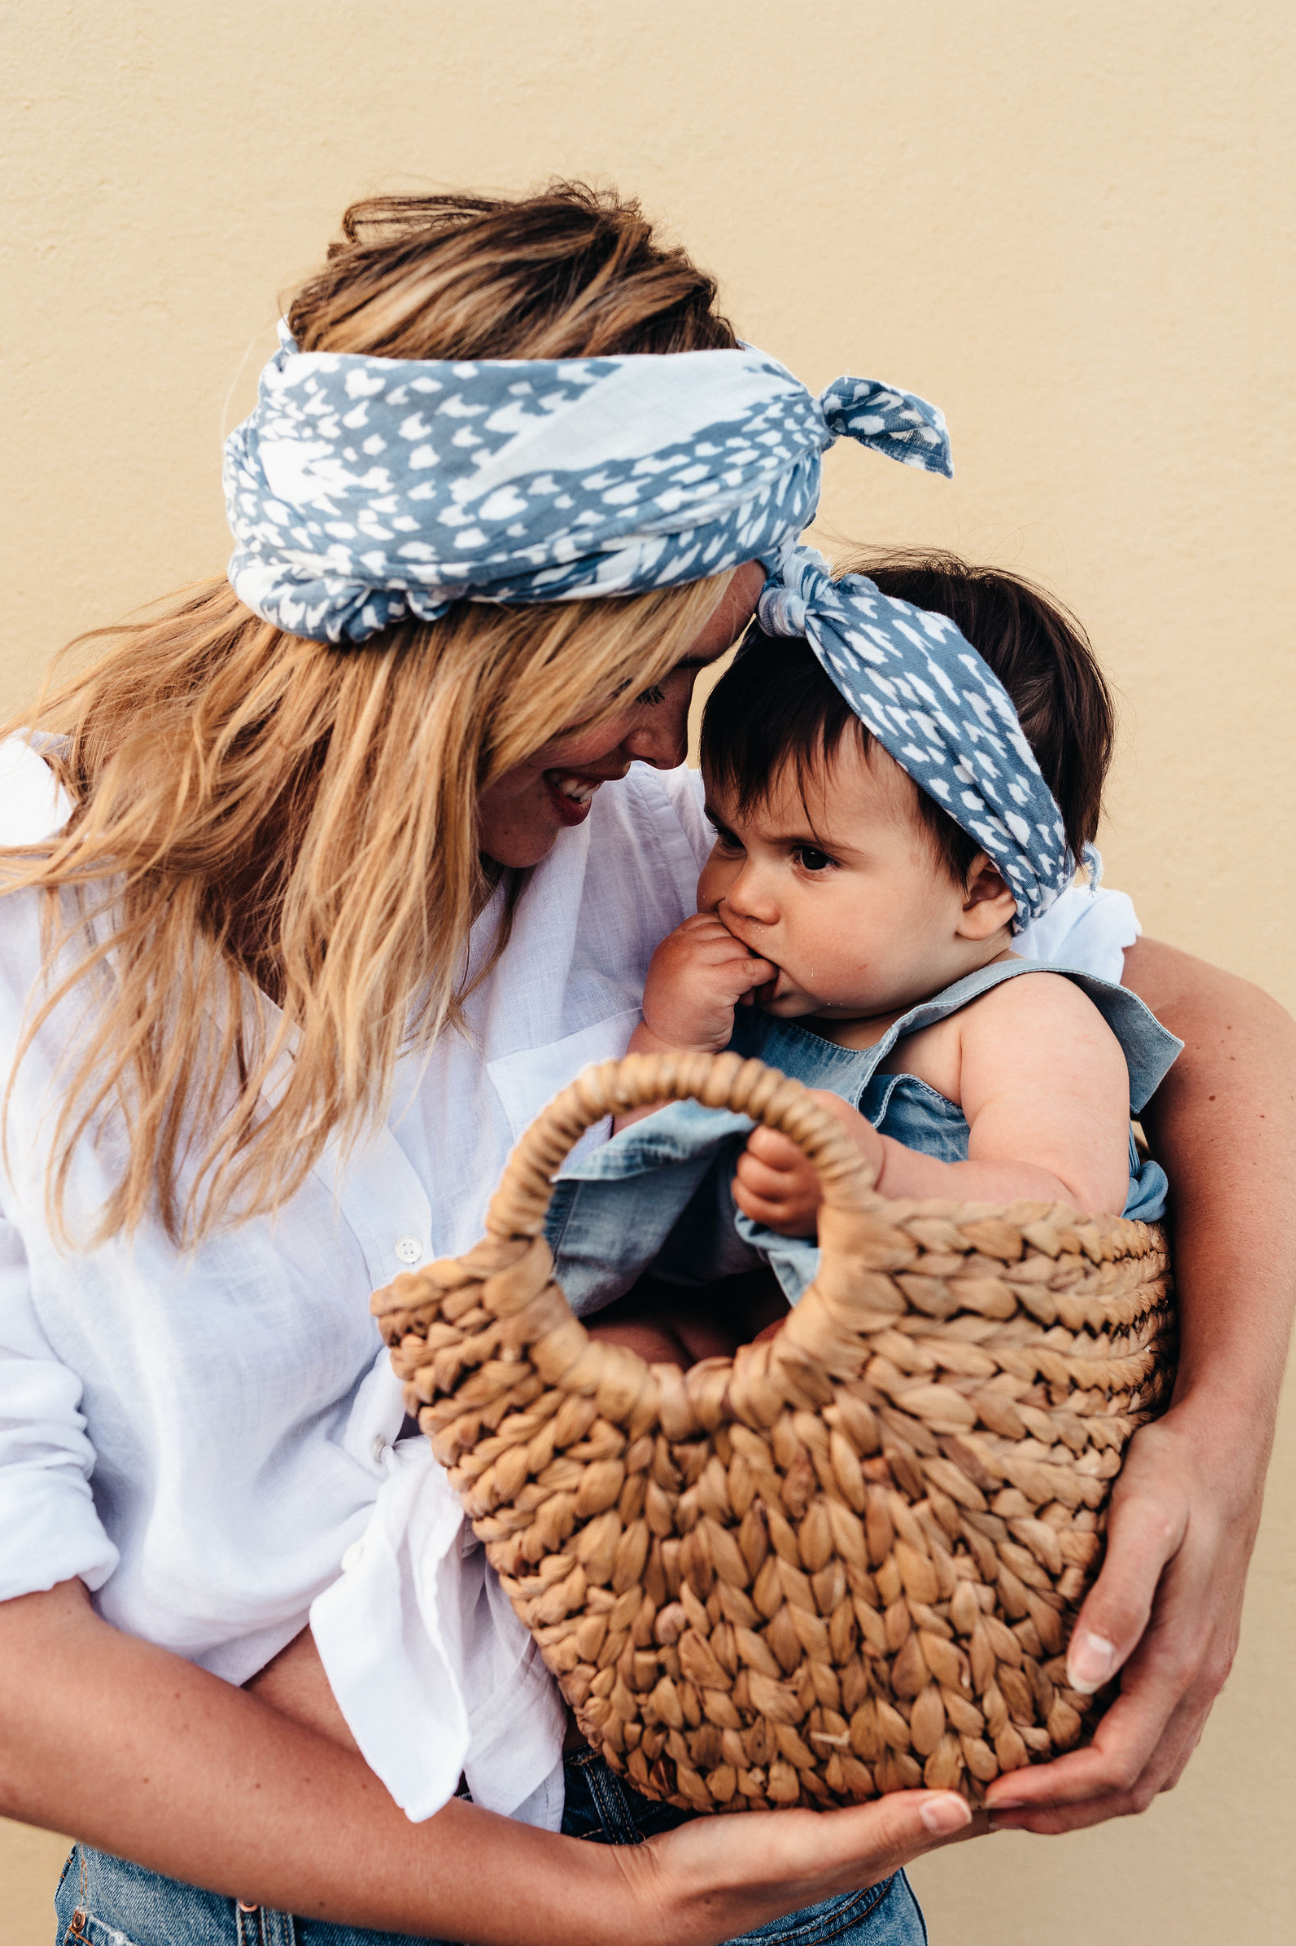 phoebe ghorayeb hey baby campaign 13.png